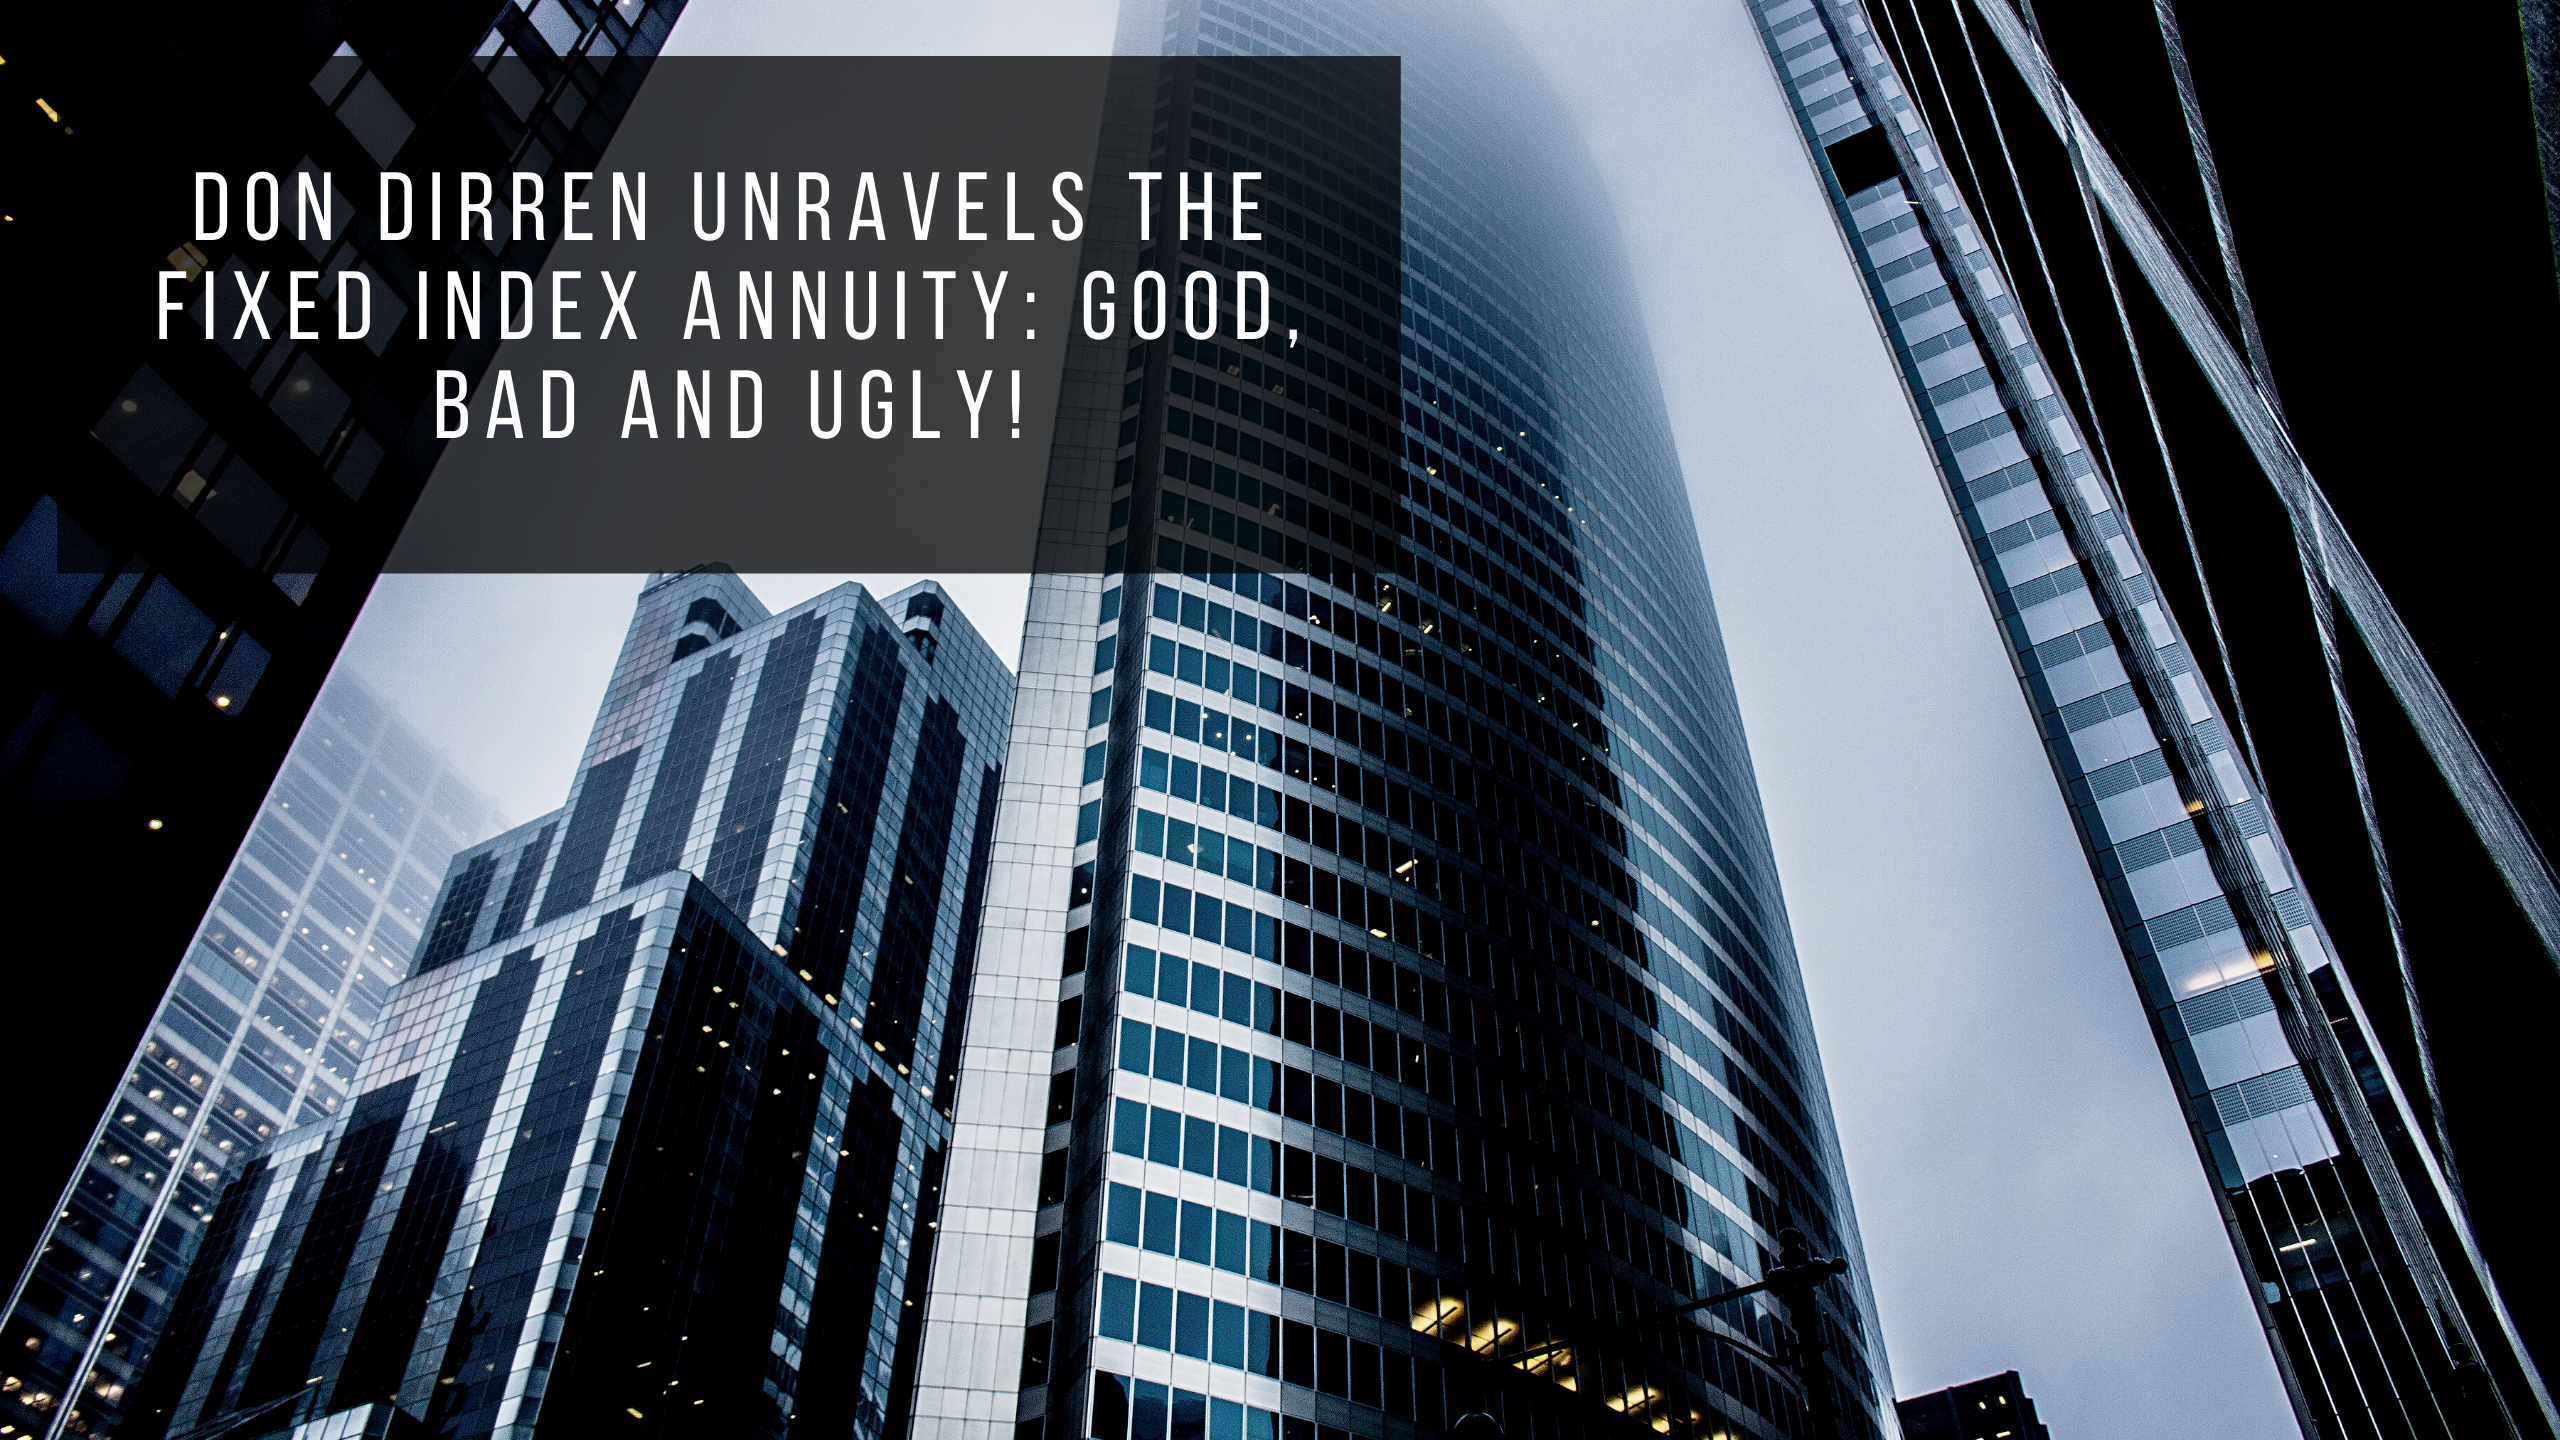 Don Dirren Unravels The Fixed Index Annuity: Good, Bad and Ugly!